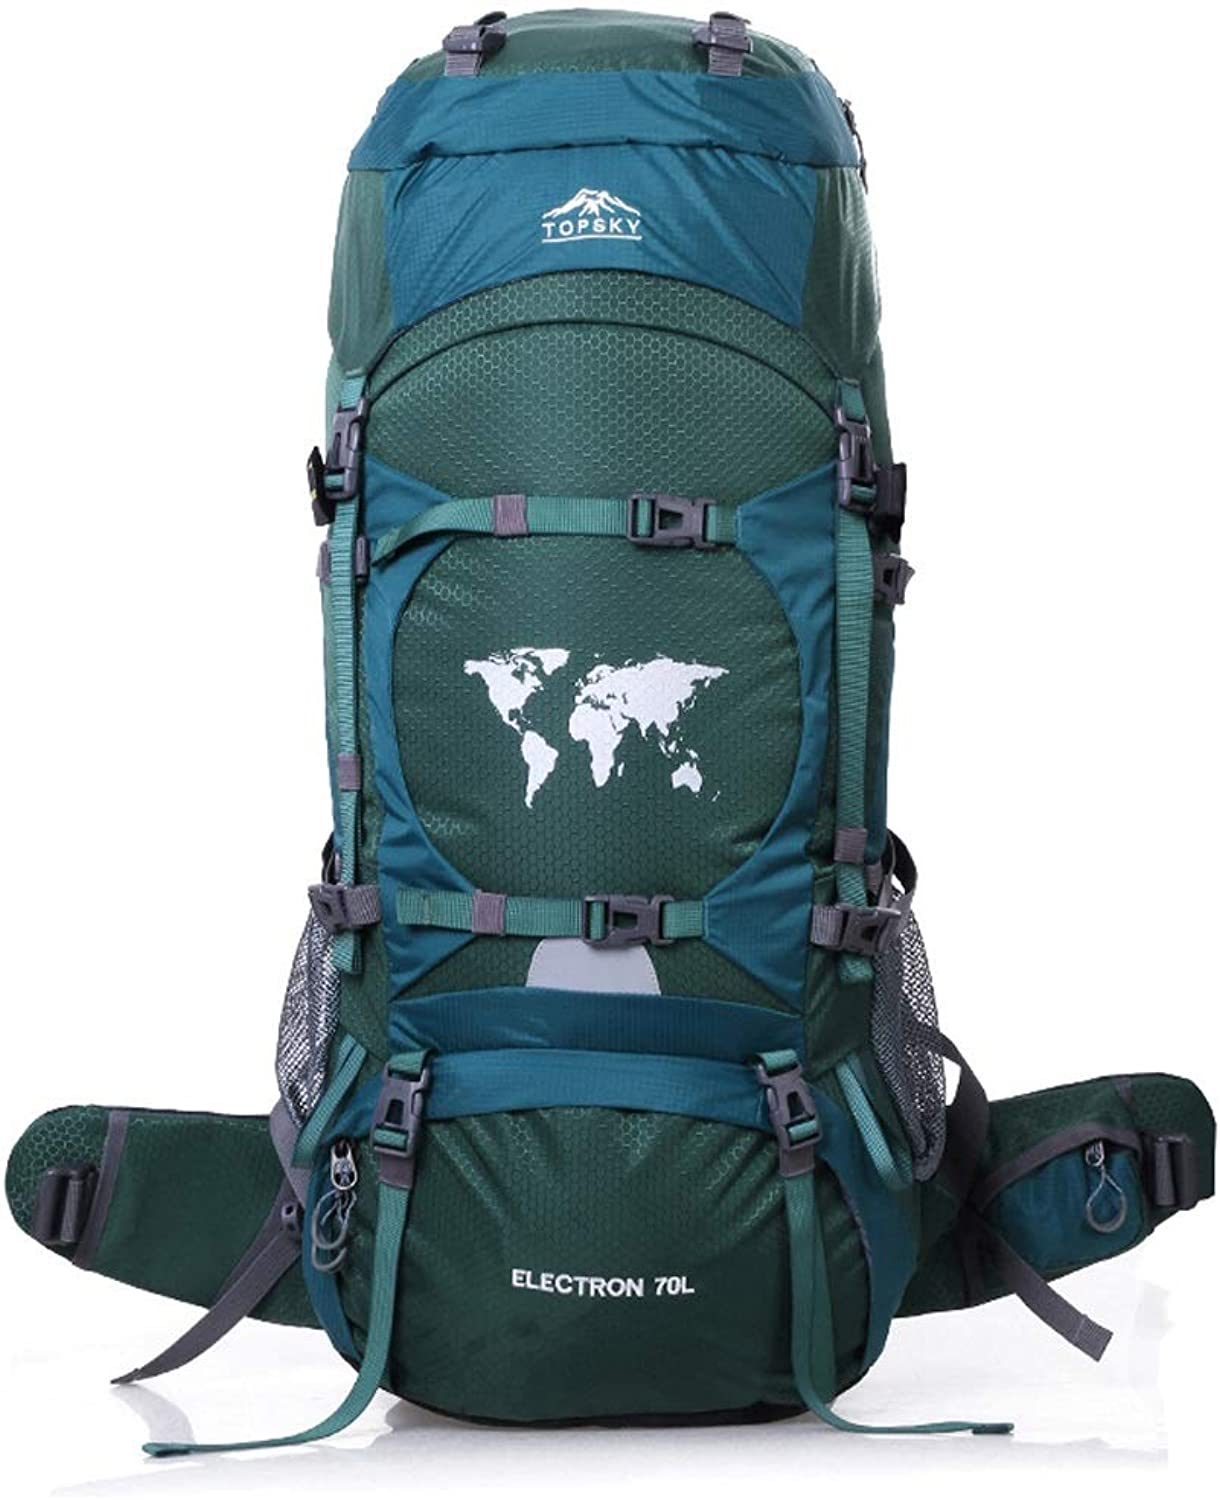 QYSZYG Mountaineering Bag Shoulder Male Travel Outdoor Backpack Female Large Capacity 70L80L Hiking Waterproof Rucksack Outdoor Backpack (color   A, Size   75cm×30cm×30cm)